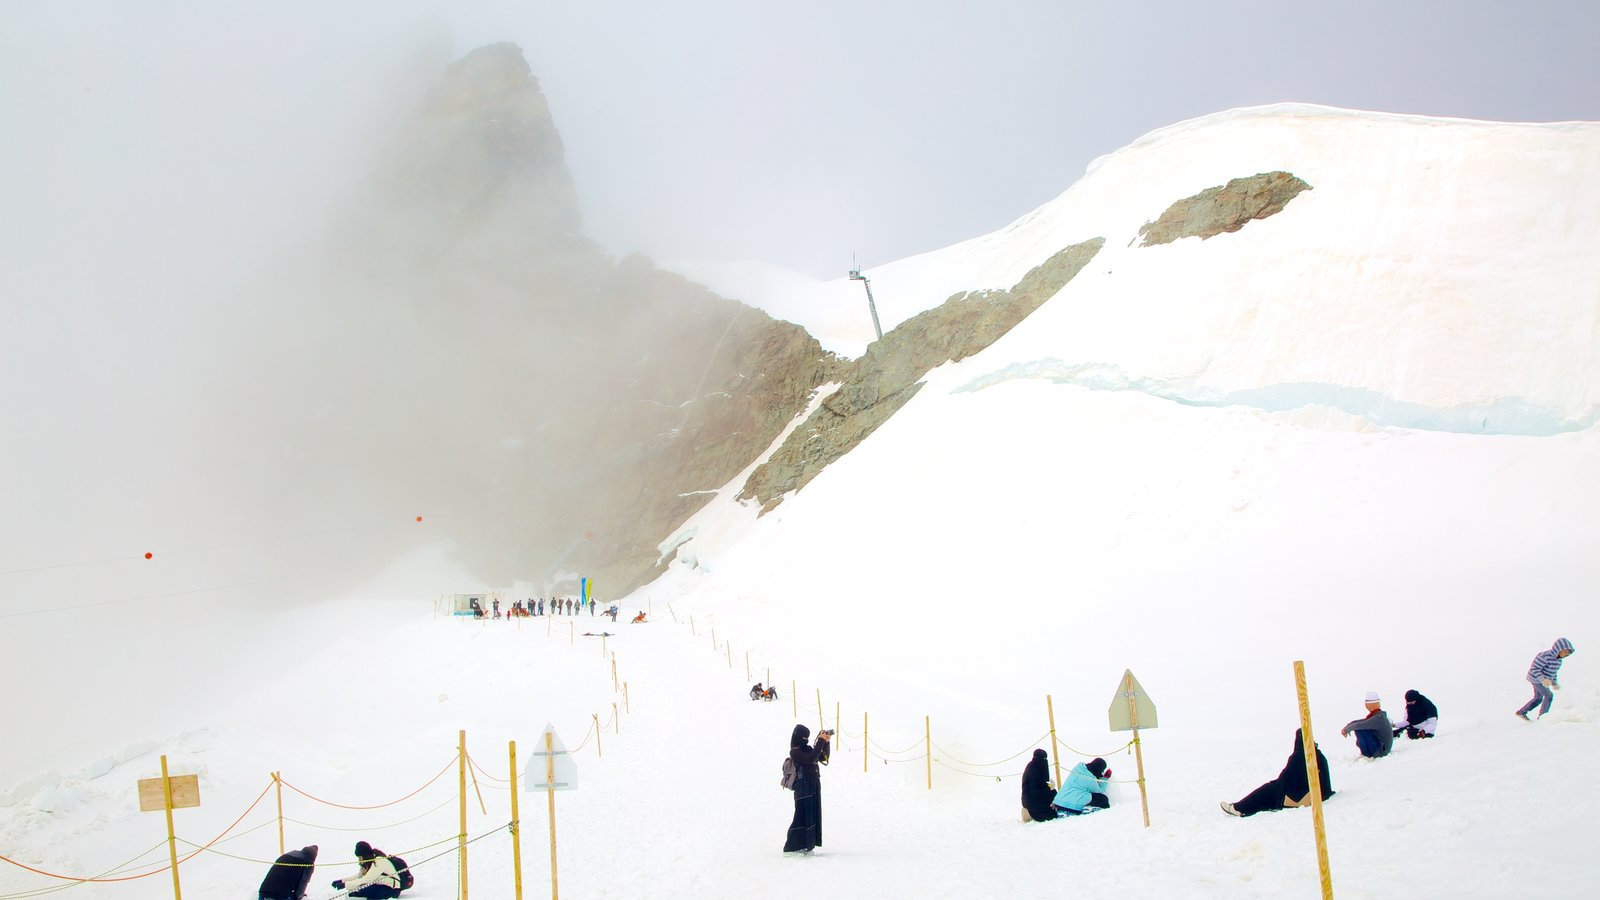 Jungfraujoch which includes snow and mountains as well as a large group of people